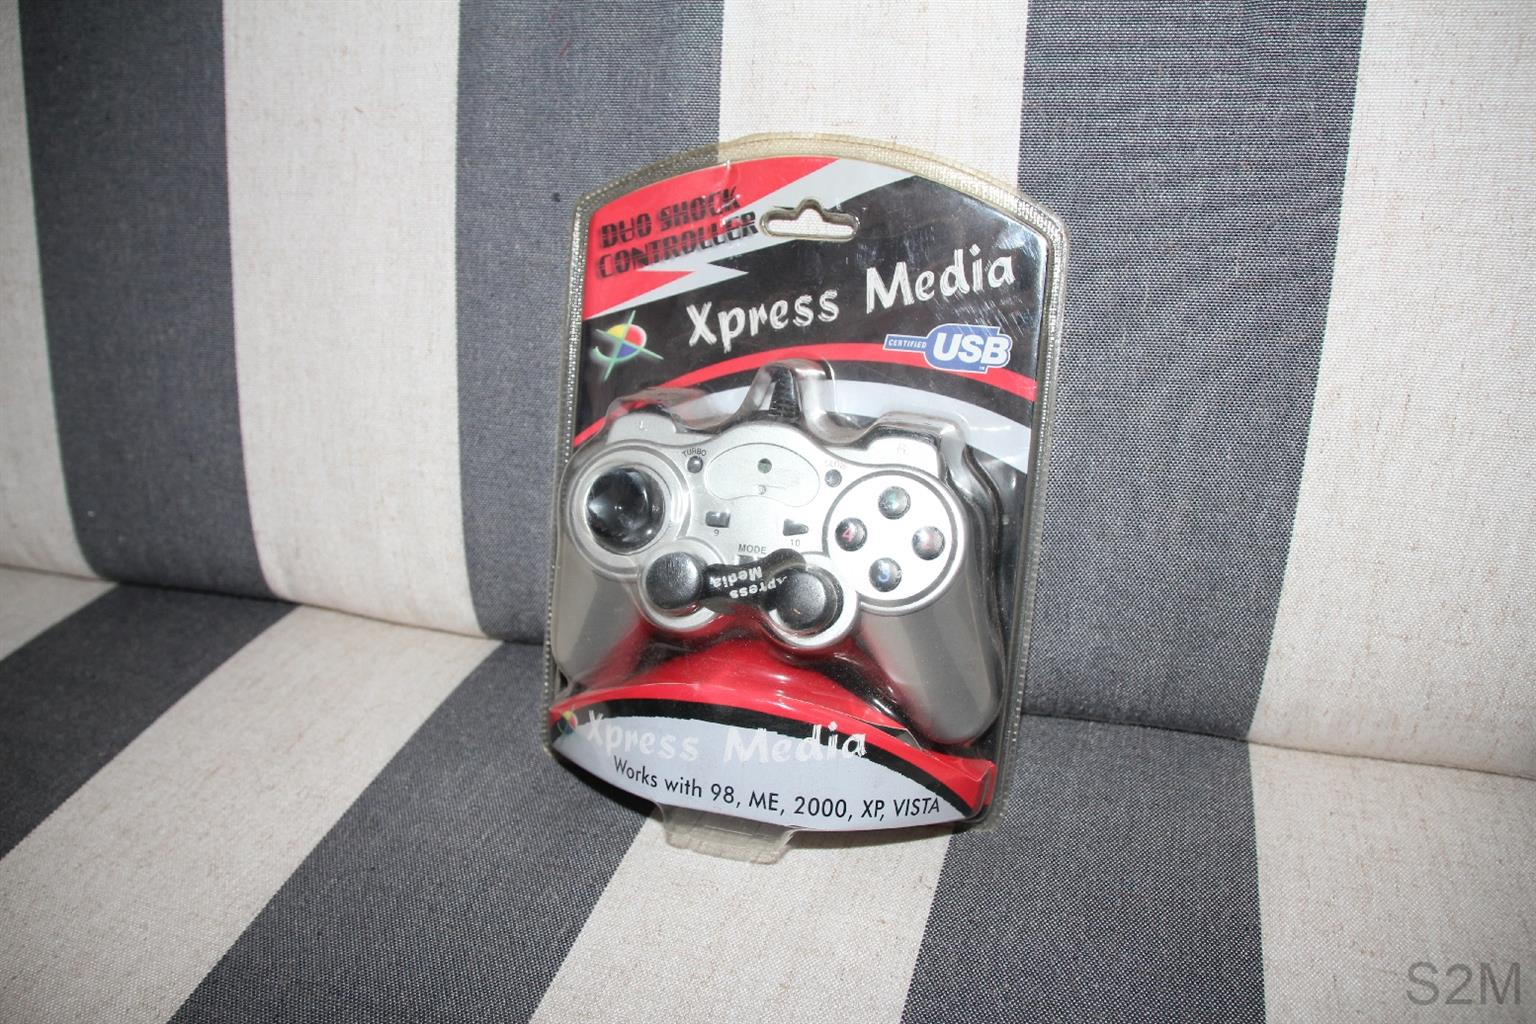 Xpress Media Duo Shock USB PC game controllers x 4.